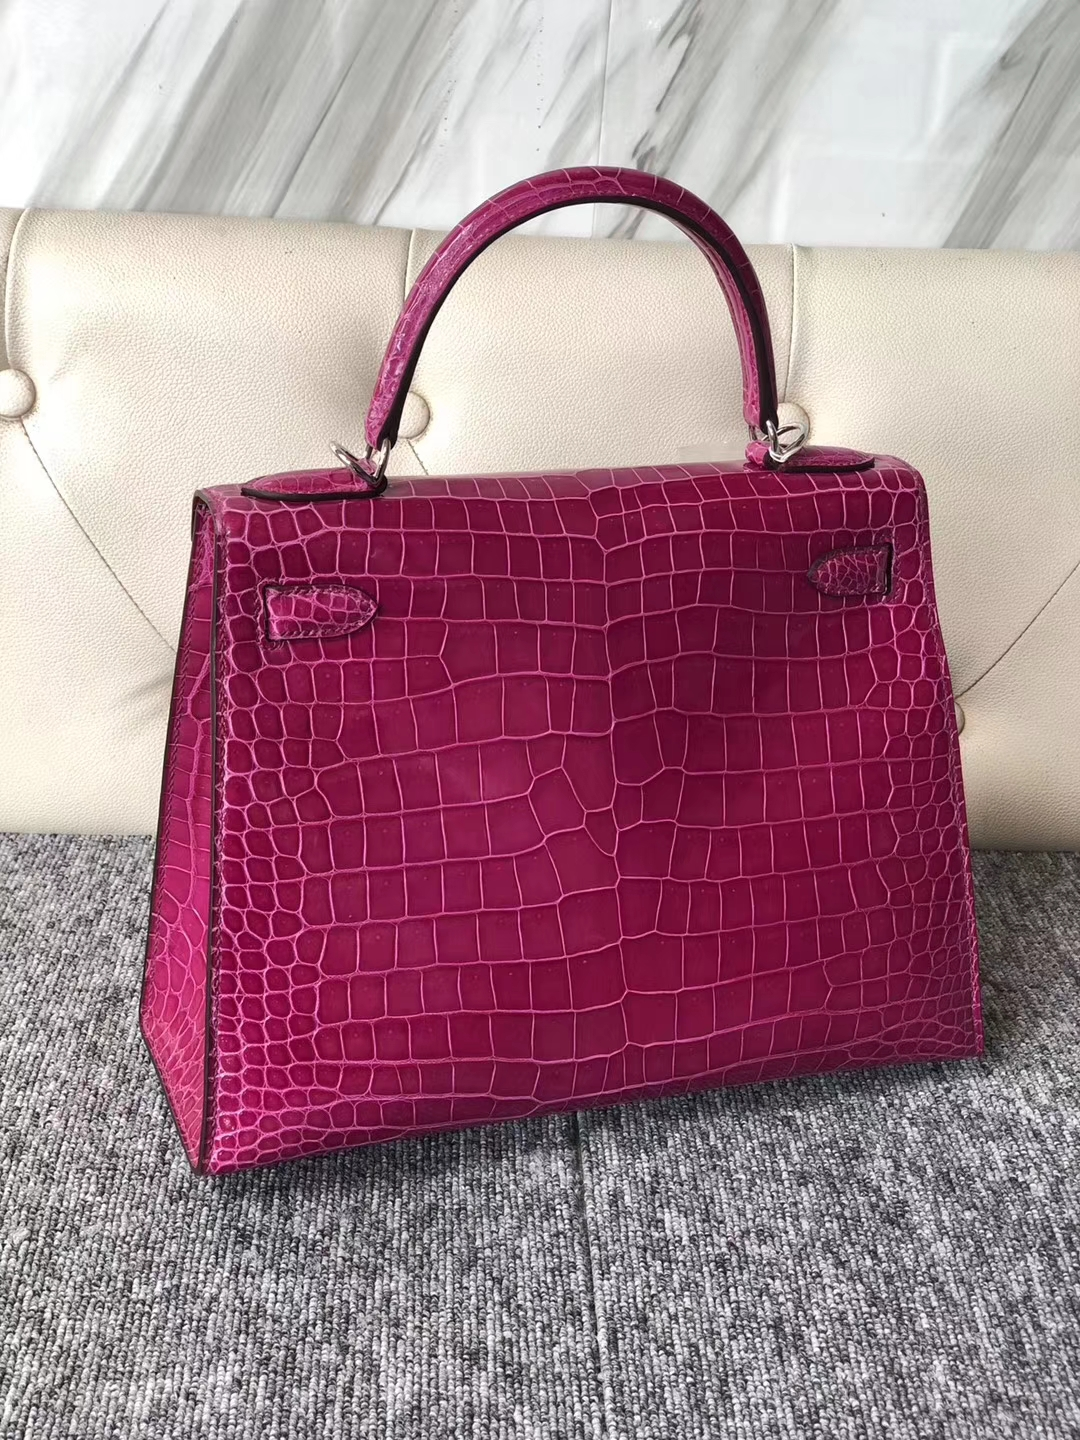 Fashion Hermes J5 Rose Scheherazade Shiny Crocodile Kelly Bag28CM Silver Hardware